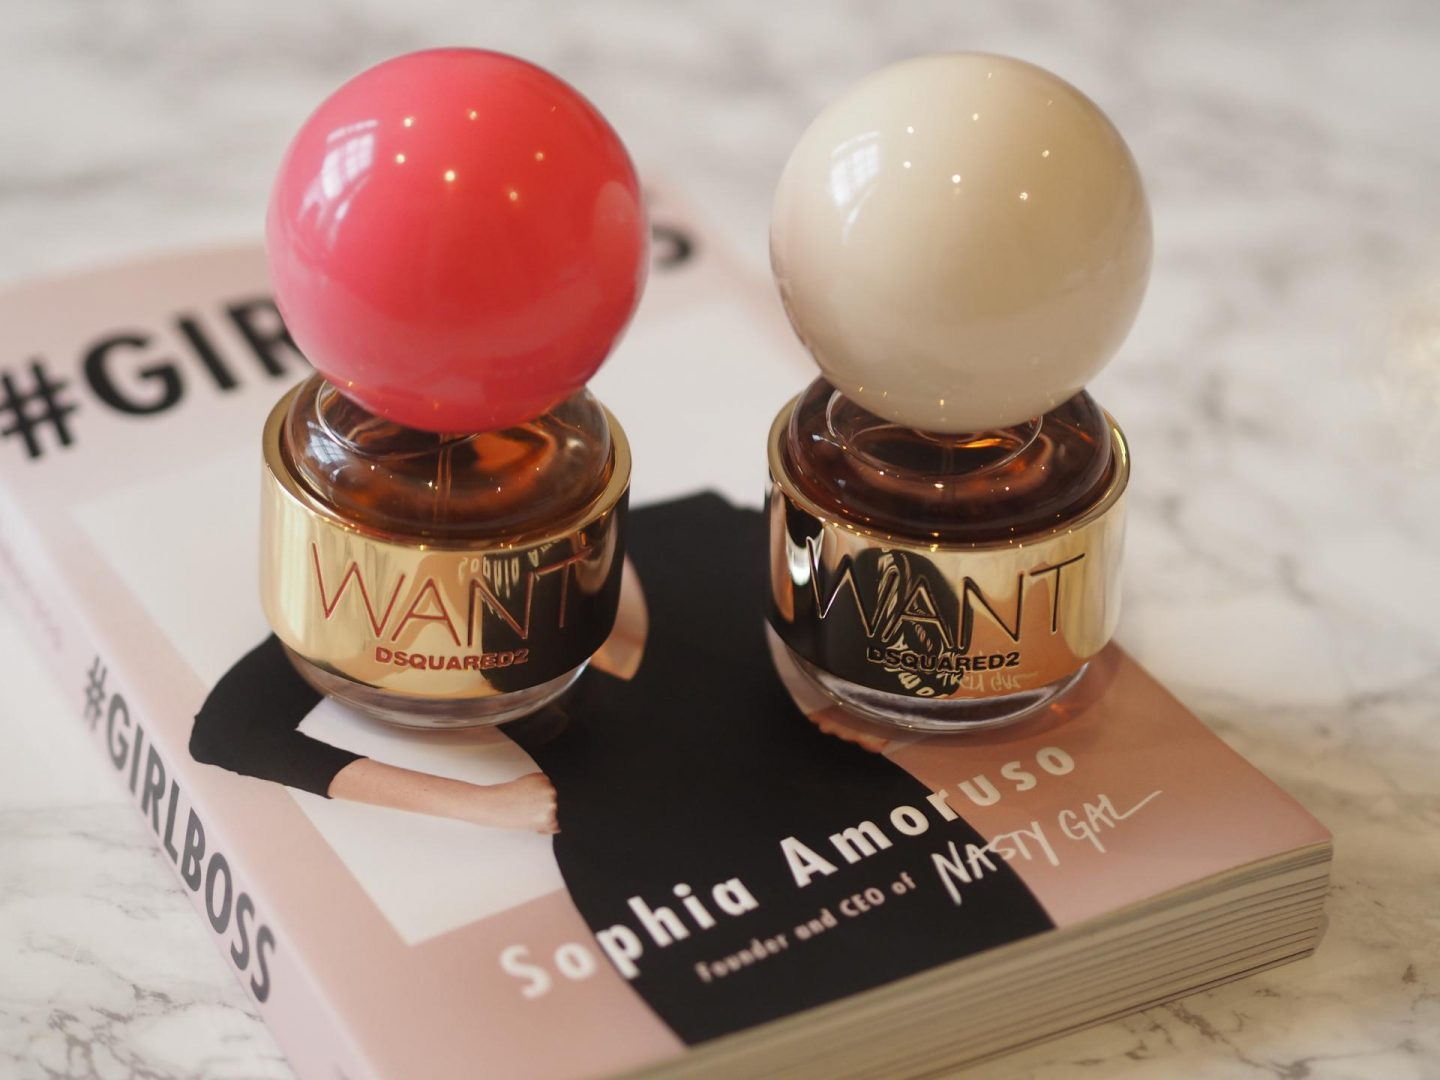 Want DSquared Pink Ginger and Want Dsquared2